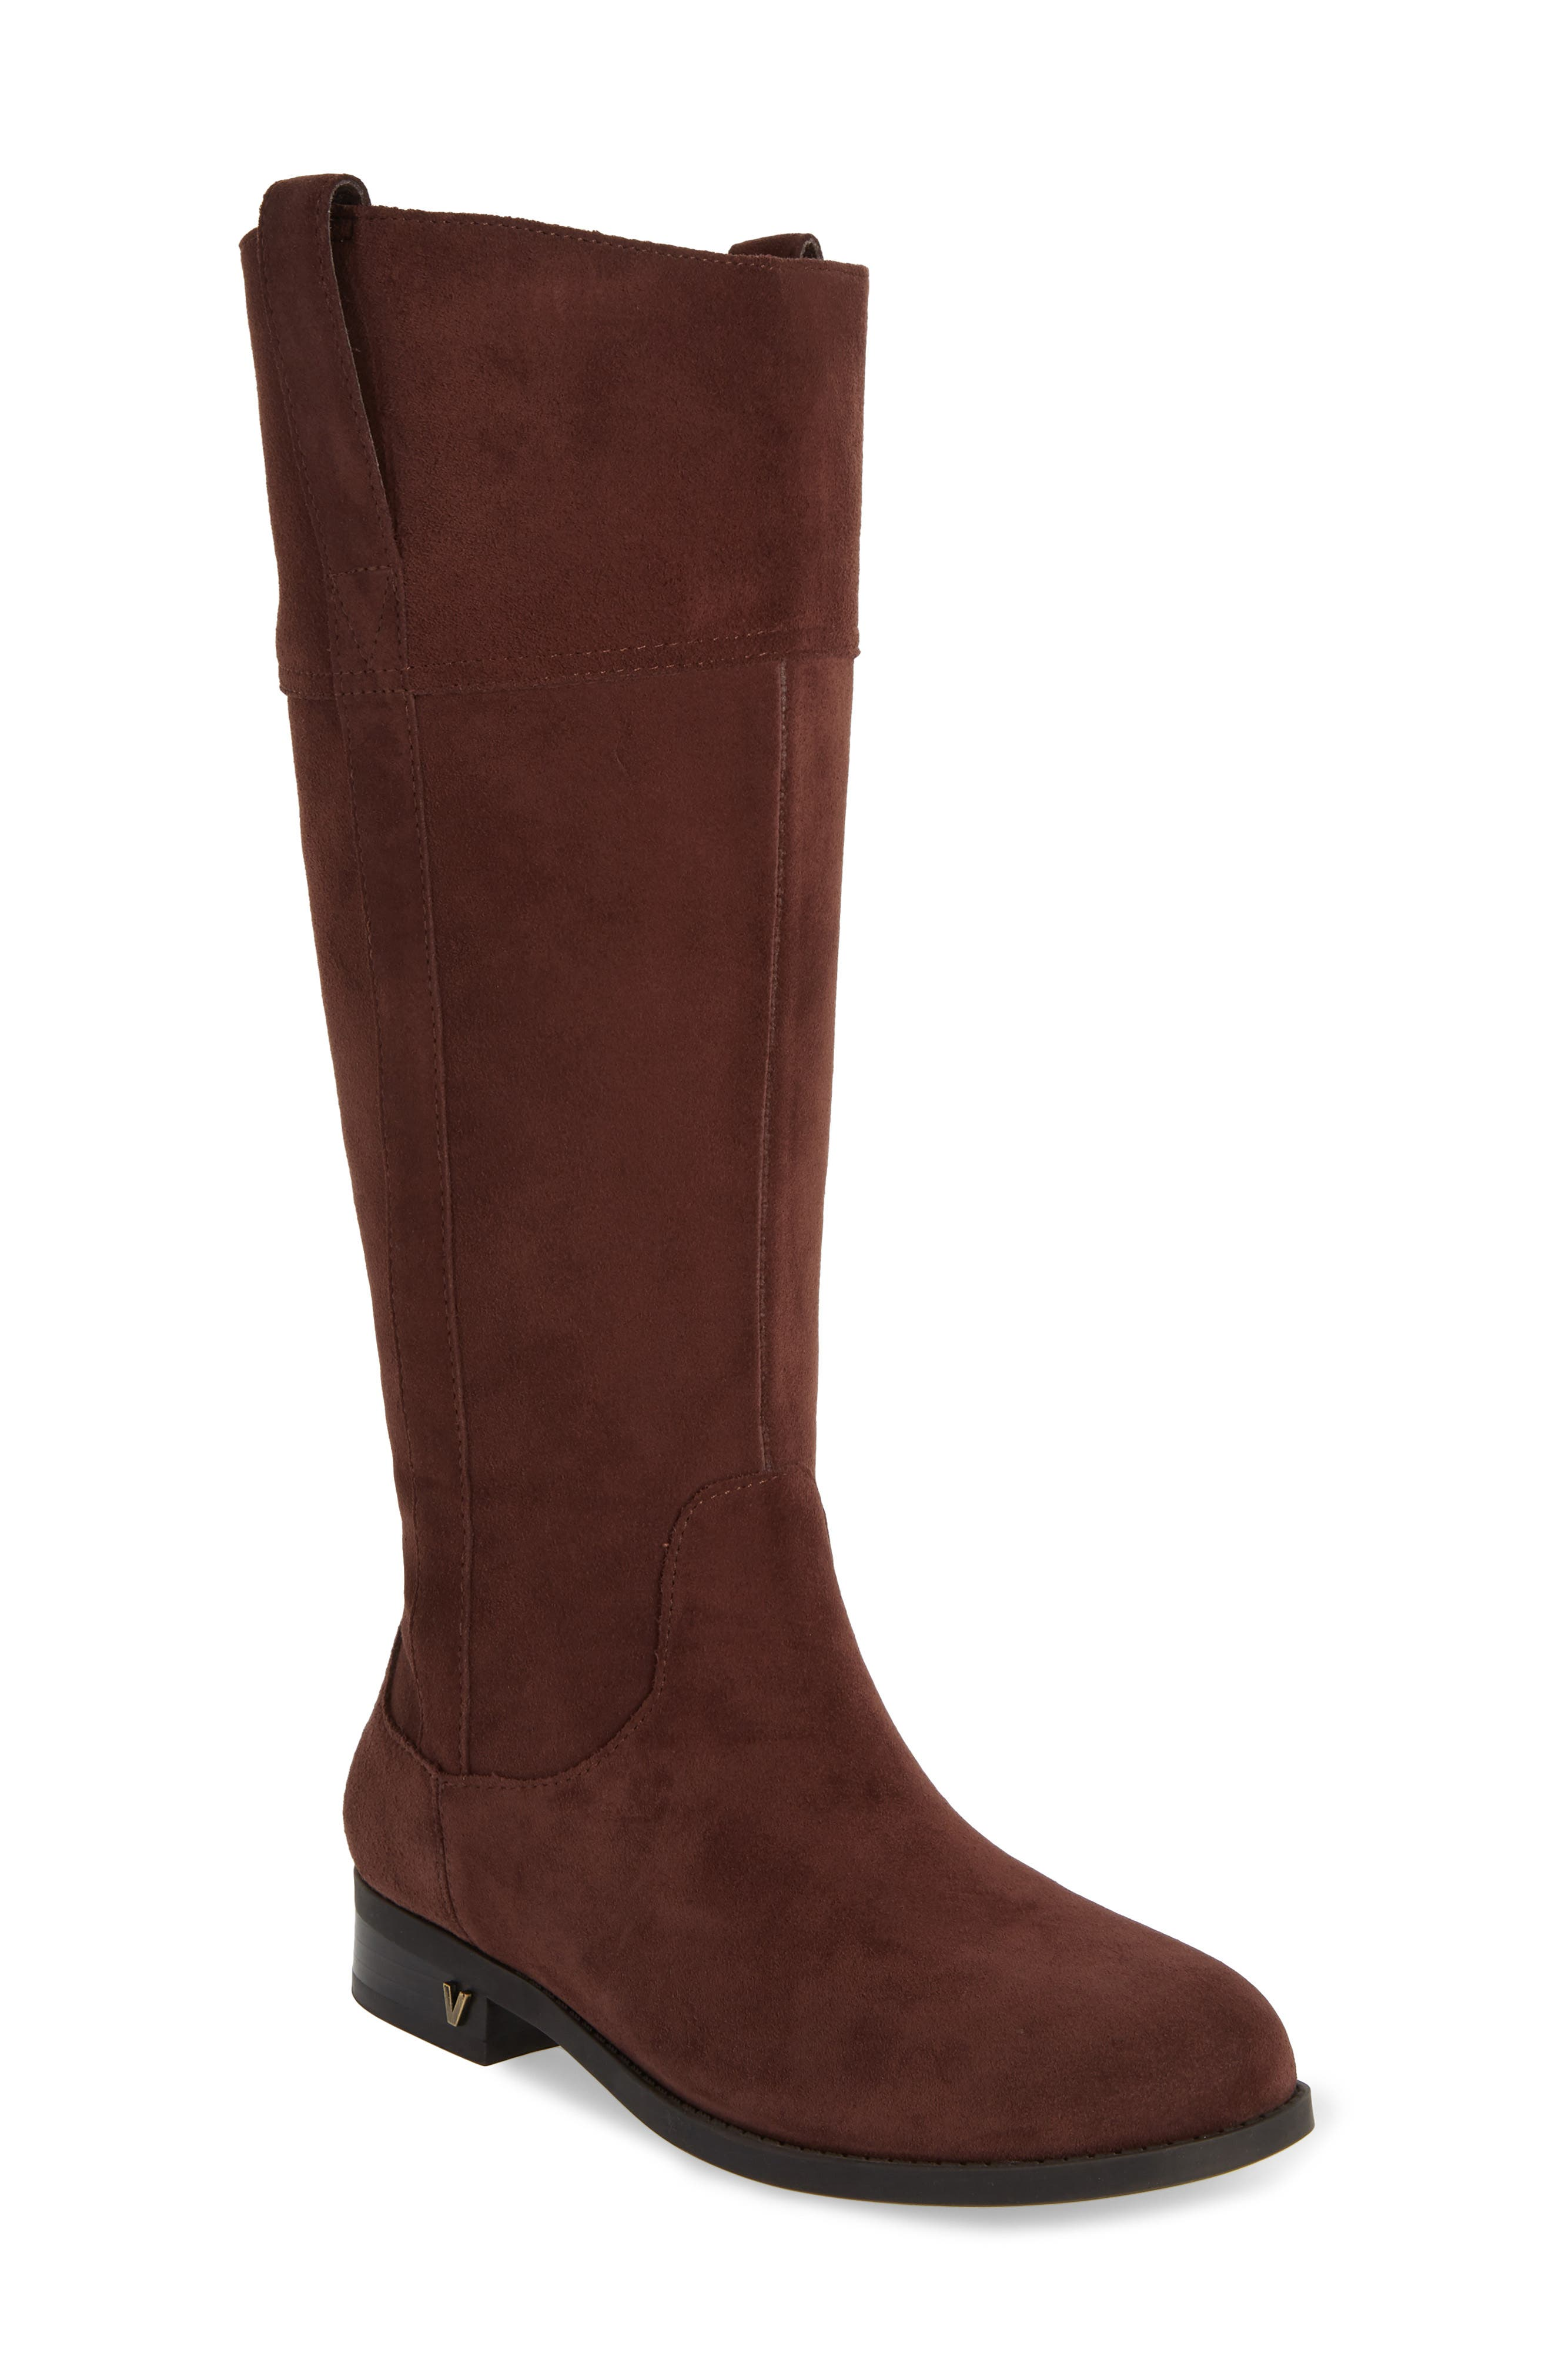 Downing Boot,                             Main thumbnail 1, color,                             CHOCOLATE SUEDE